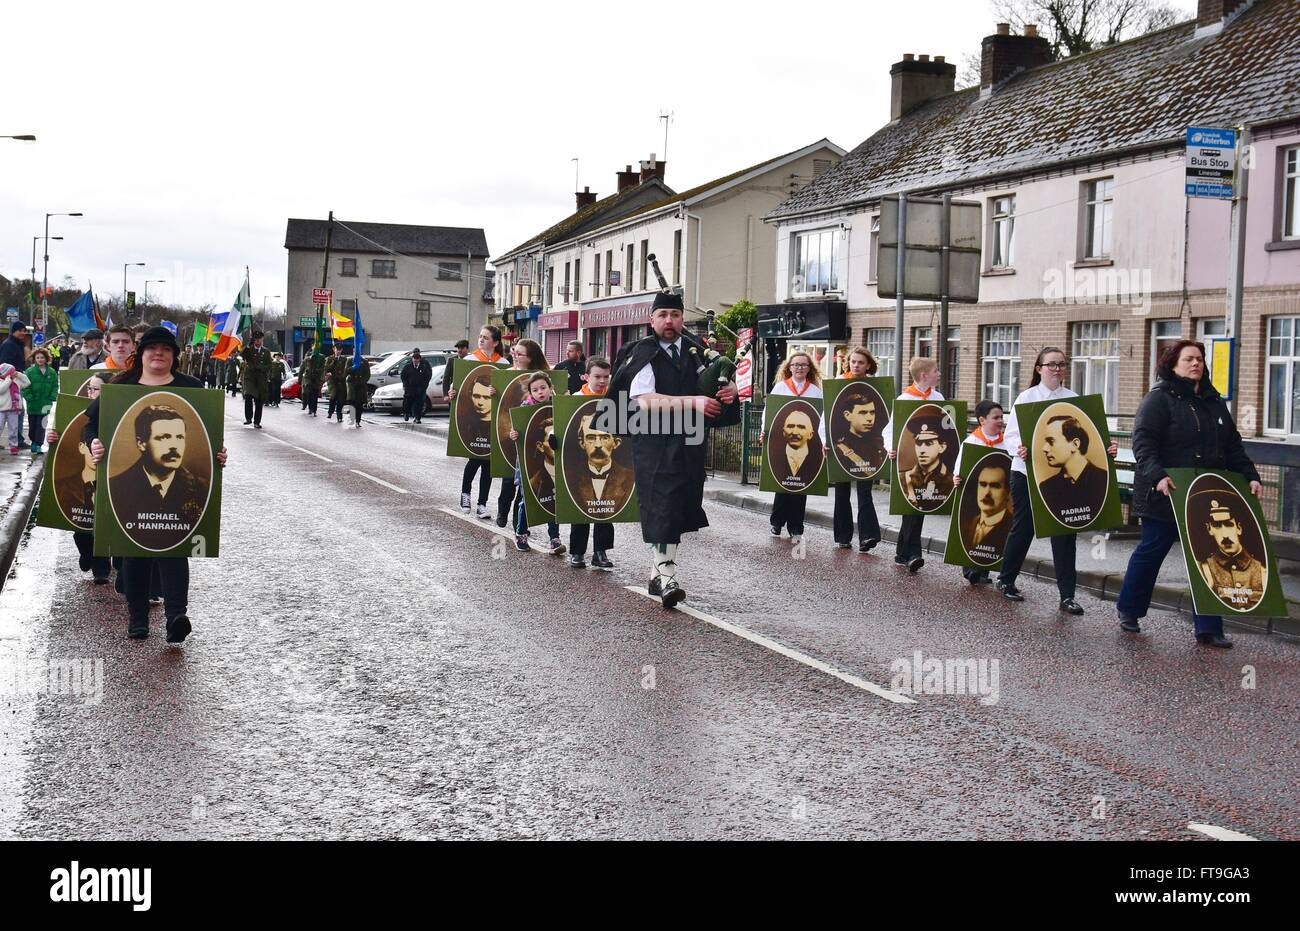 Coalisland, County Tyrone, Northern Ireland. 26th Mar, 2016. Marchers hold placards depicting members of the 1916 - Stock Image